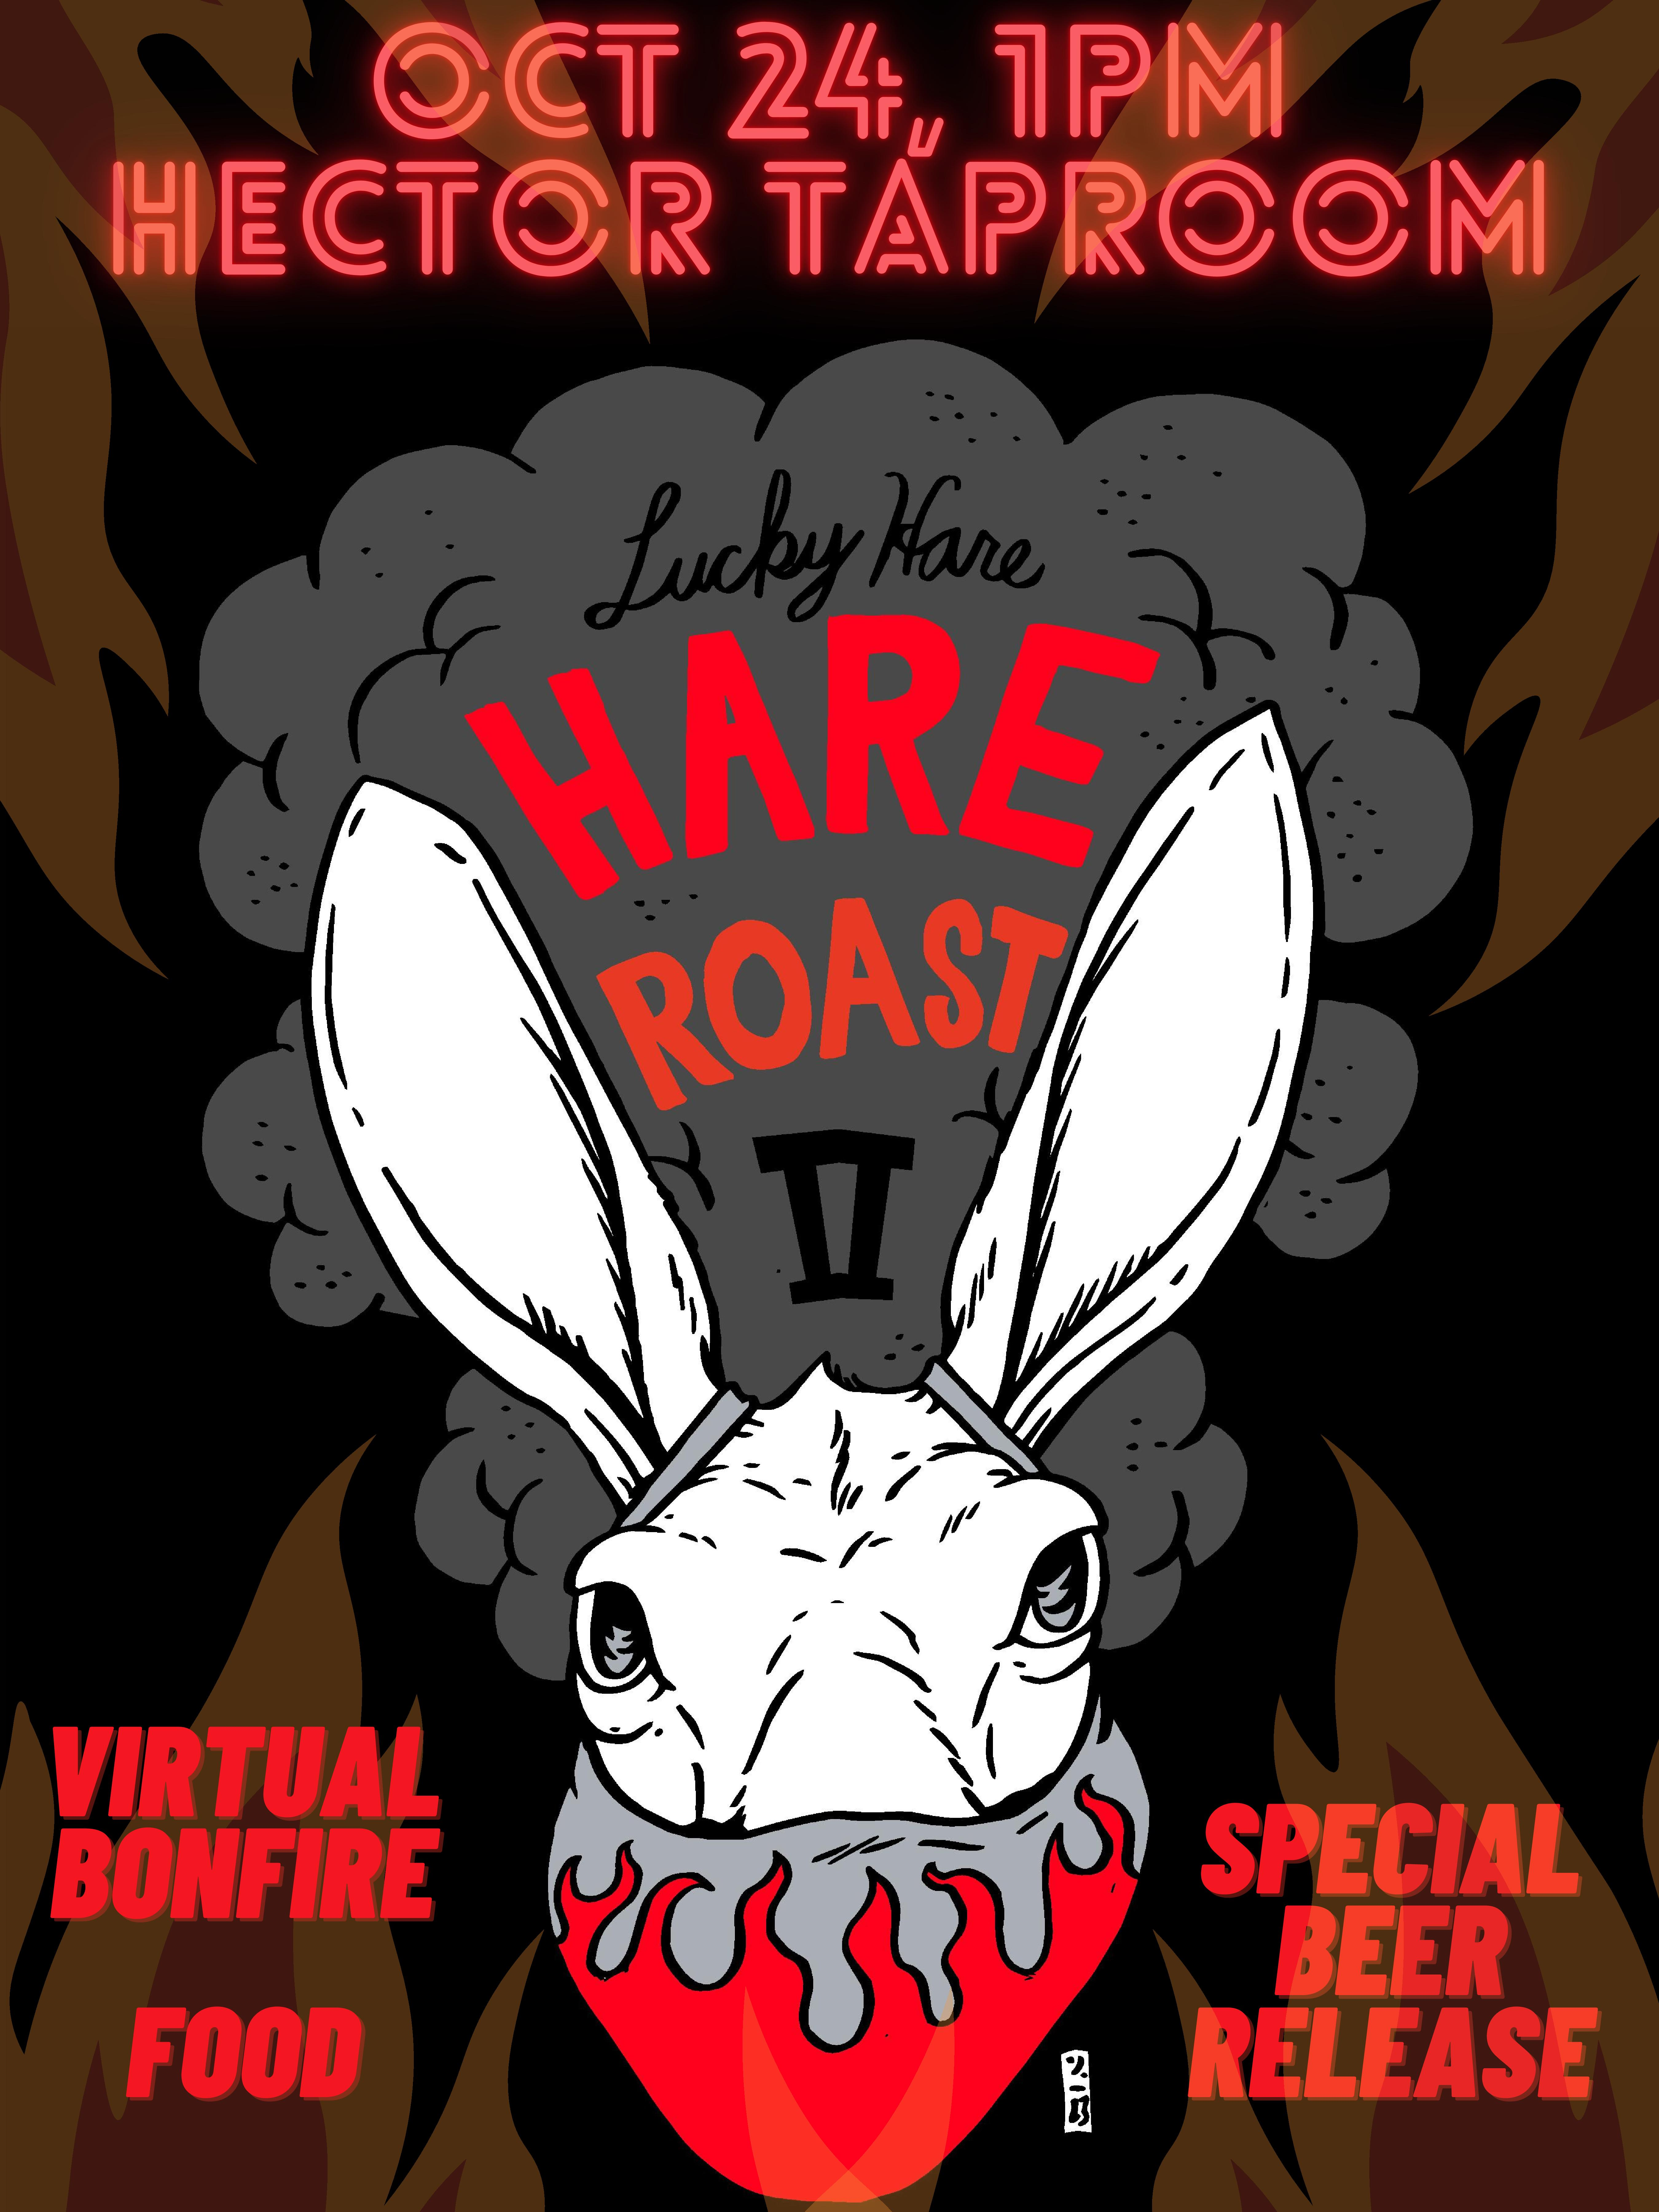 Second Annual Hare Roast Hector New York Lucky Hare special beer food virtual bonfire